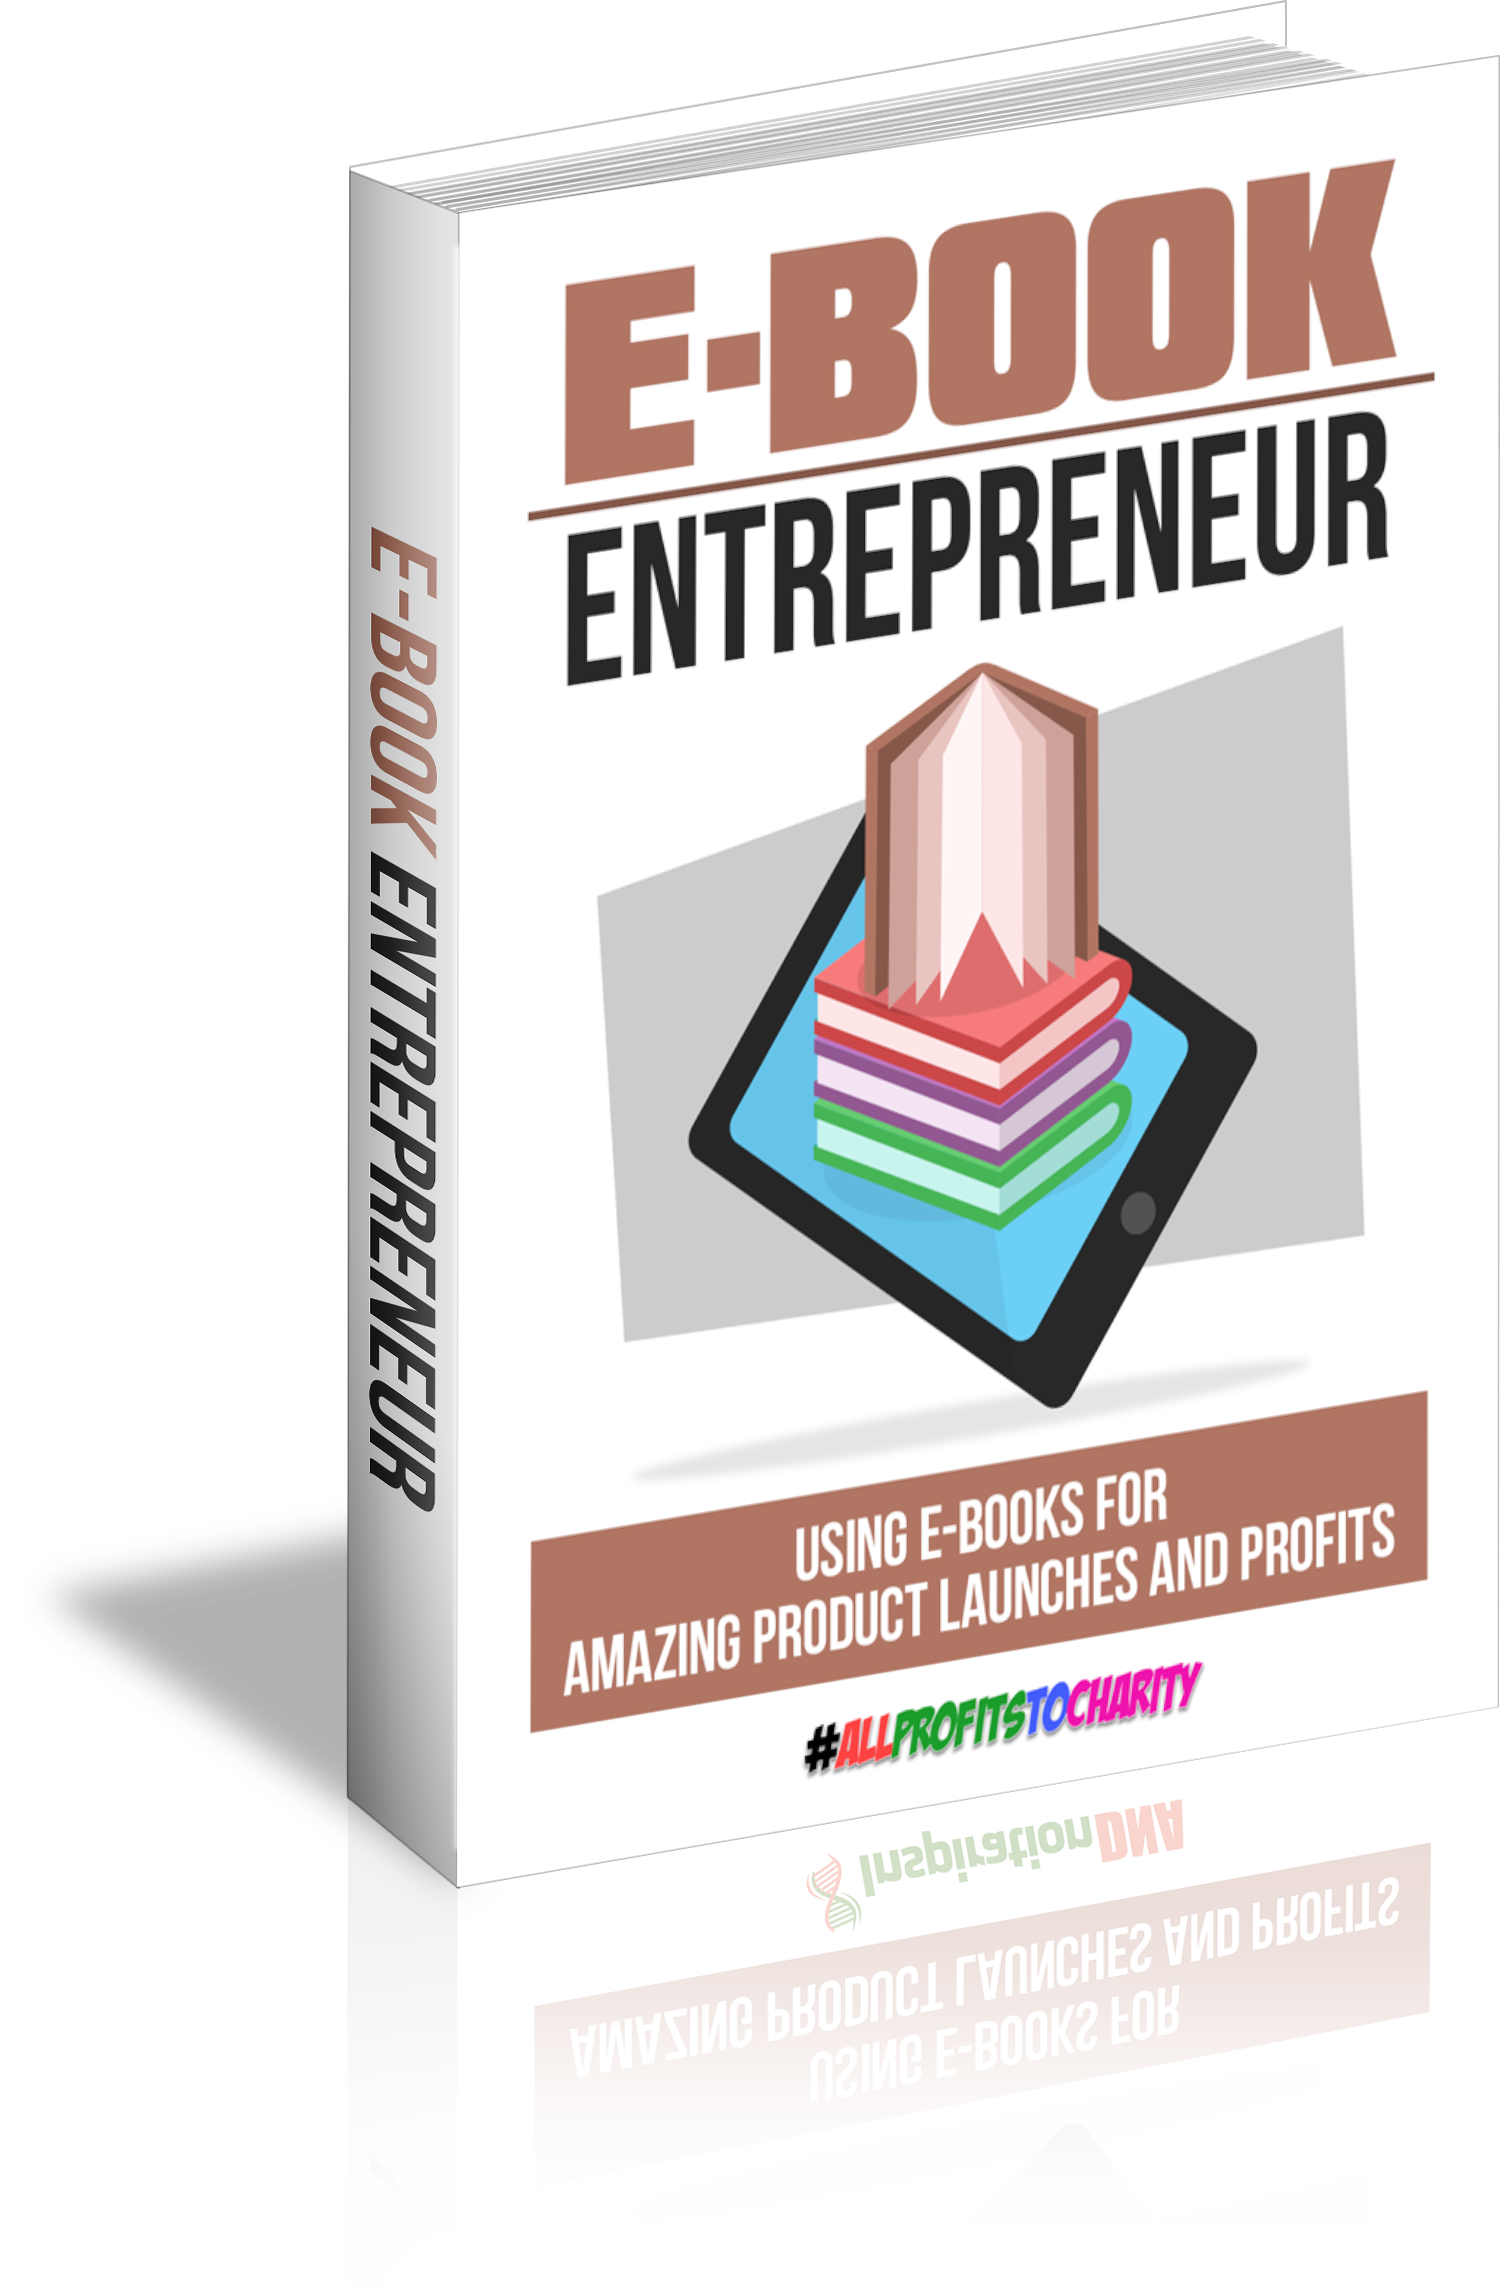 eBook Entrepreneur cover